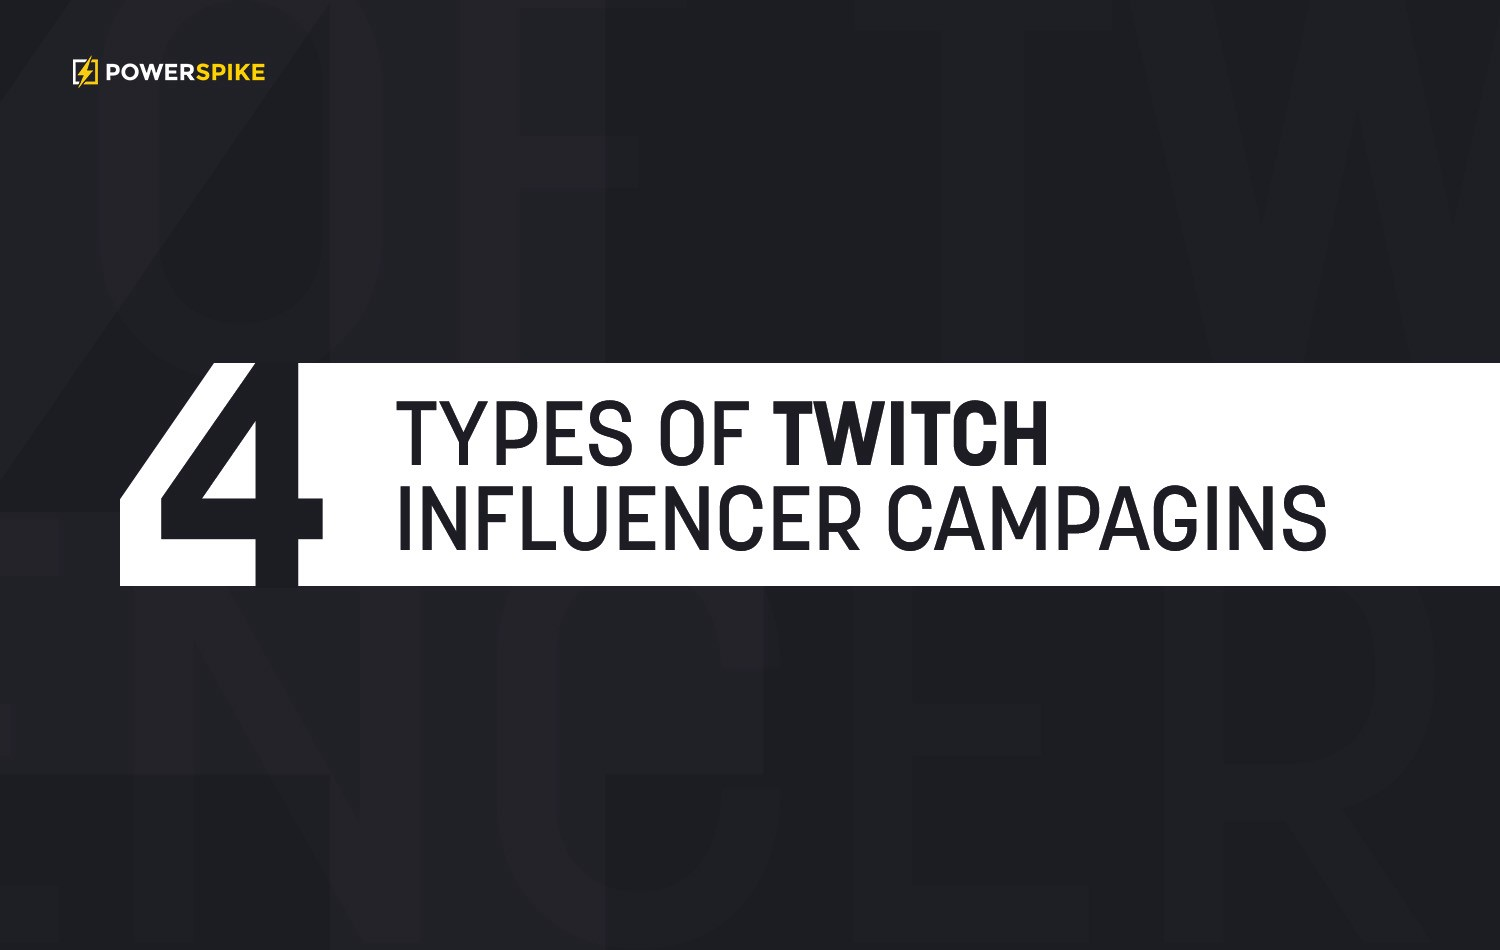 The 4 Types of Twitch Influencer Marketing Campaigns